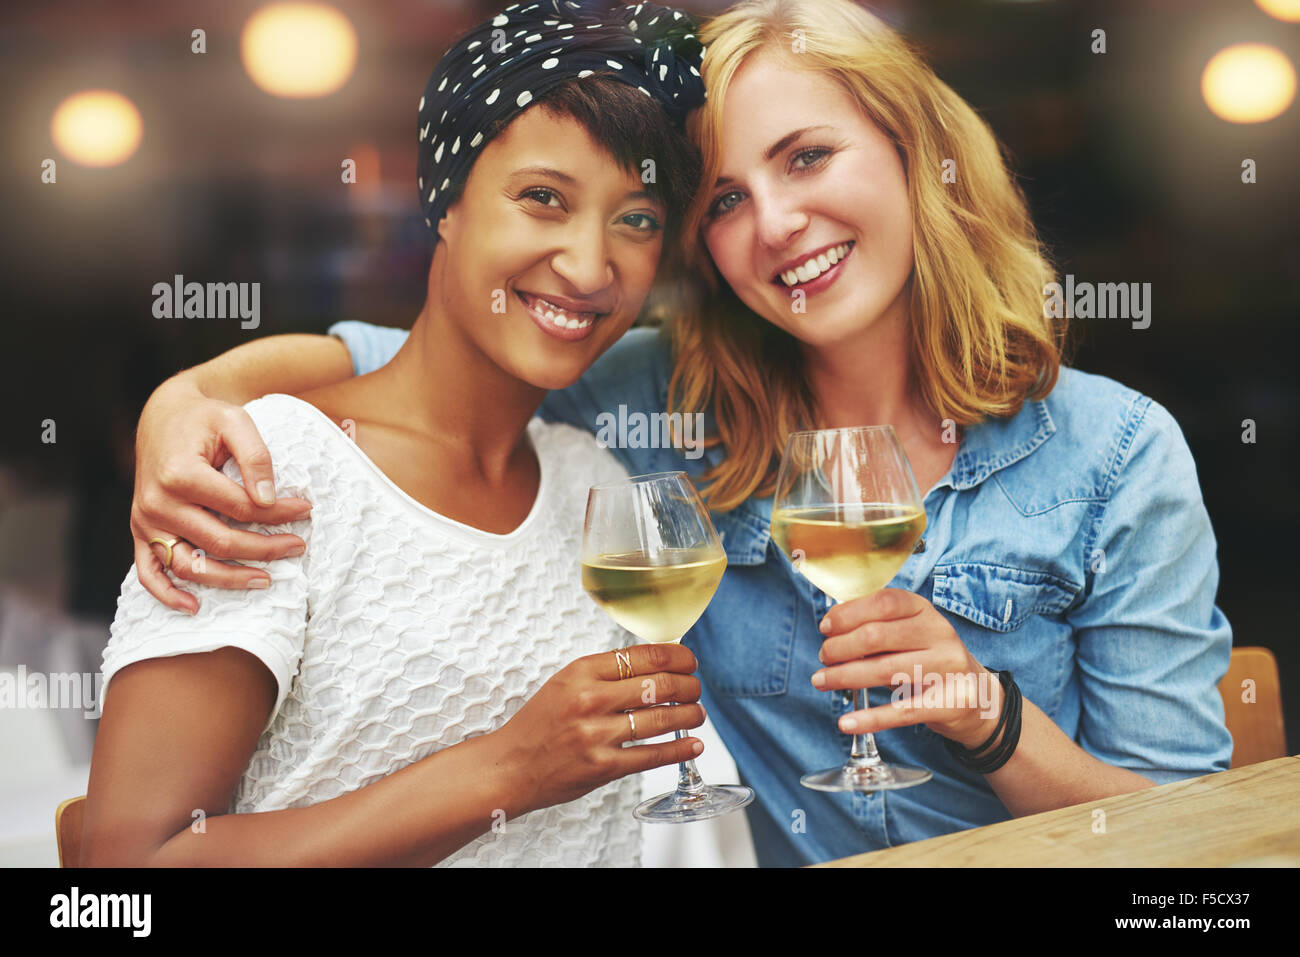 Two gorgeous young multiethnic women enjoying a glass of wine raising their glasses in a toast to the camera as - Stock Image